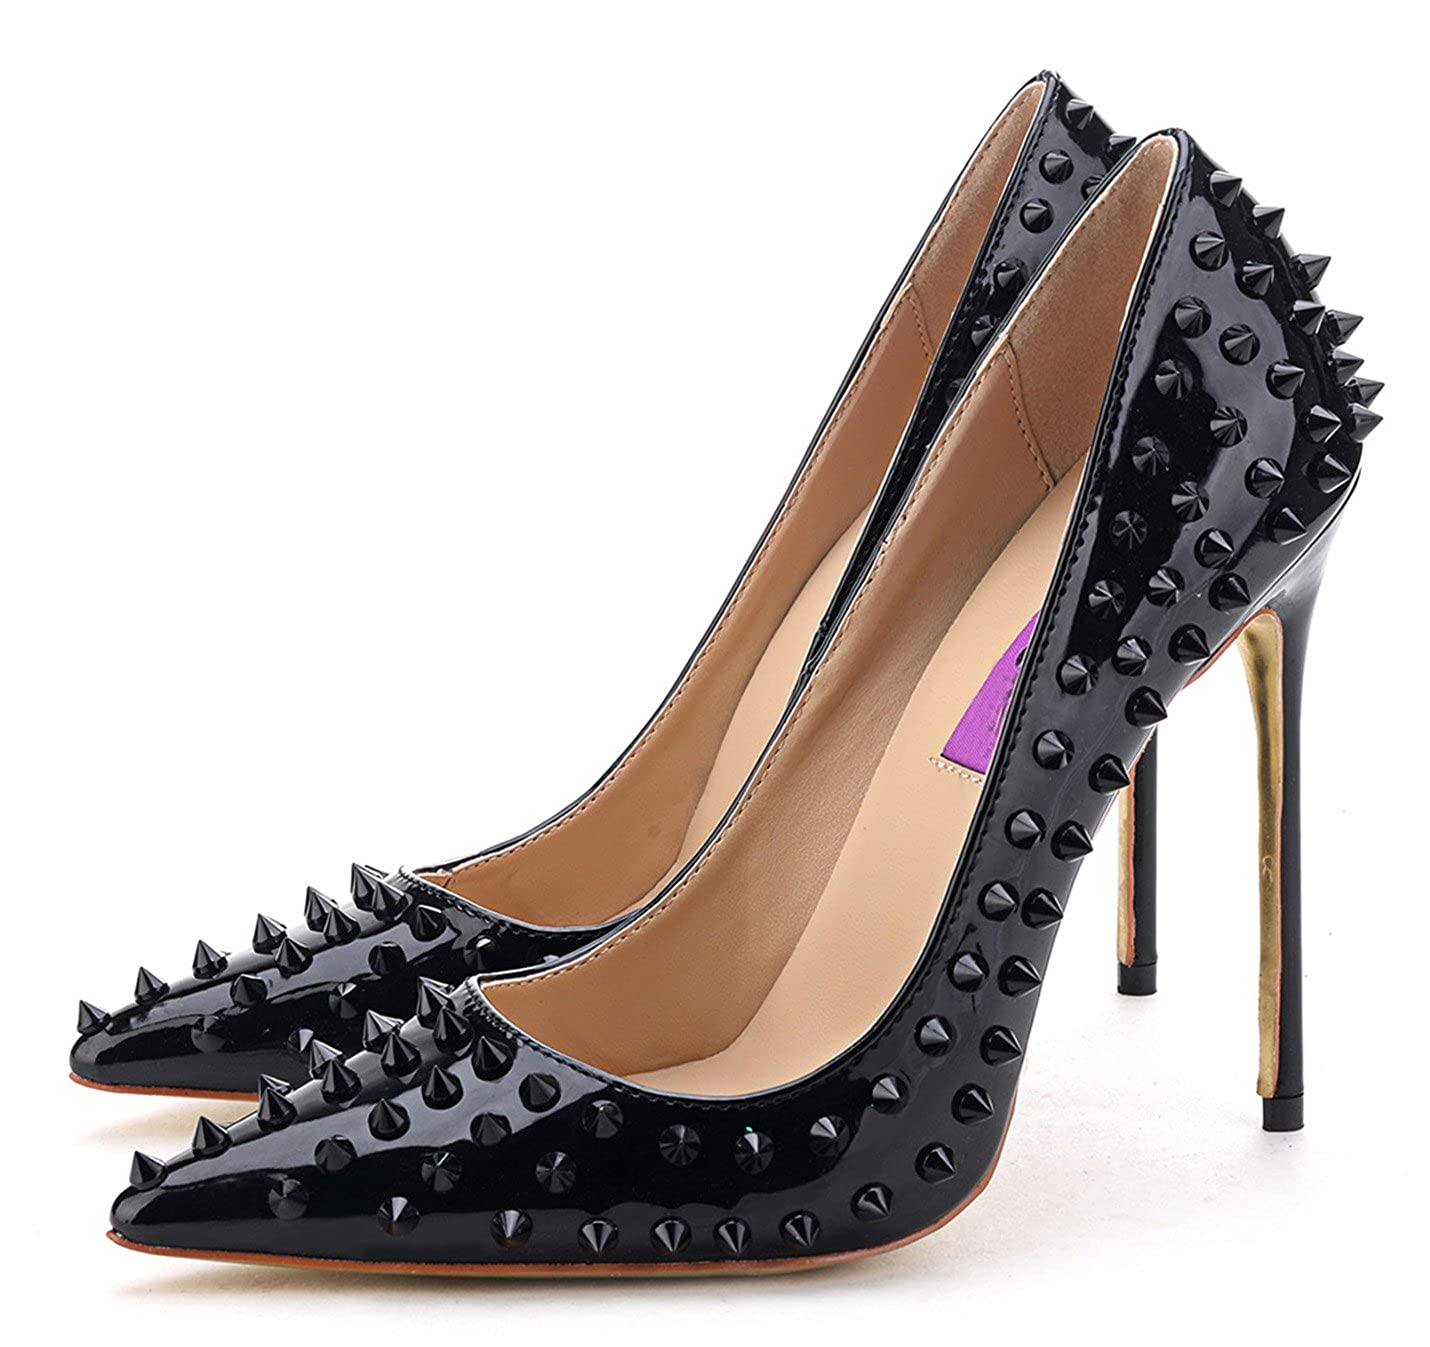 2ce892e71da Amazon.com | Jiu du Women's High Heel for Wedding Party Pumps Fashion Rivet  Studded Stiletto Pointed Toe Dress Shoes | Pumps